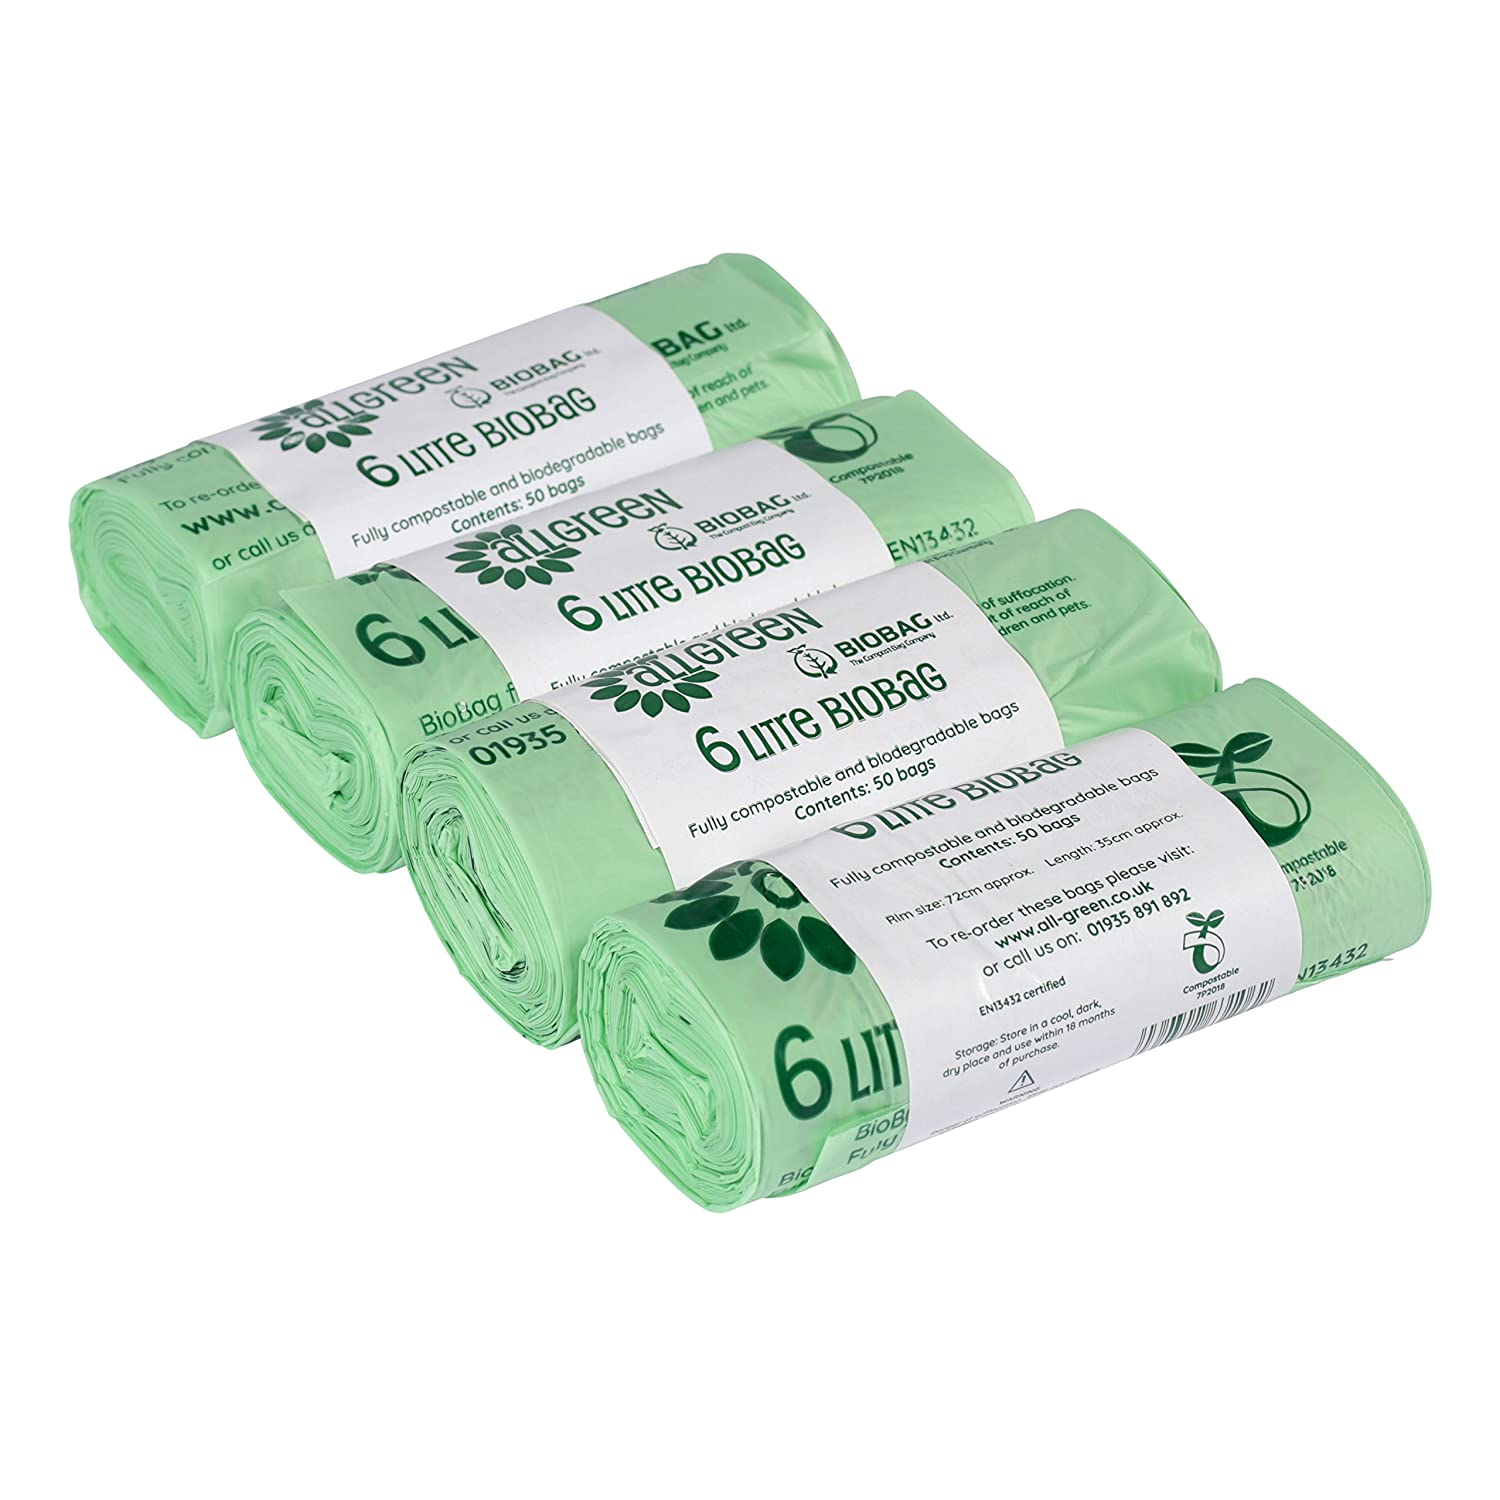 All-Green 6 Litre Biobag Compostable Kitchen Caddy Bin Liners, 200 Bags VC 6L-4